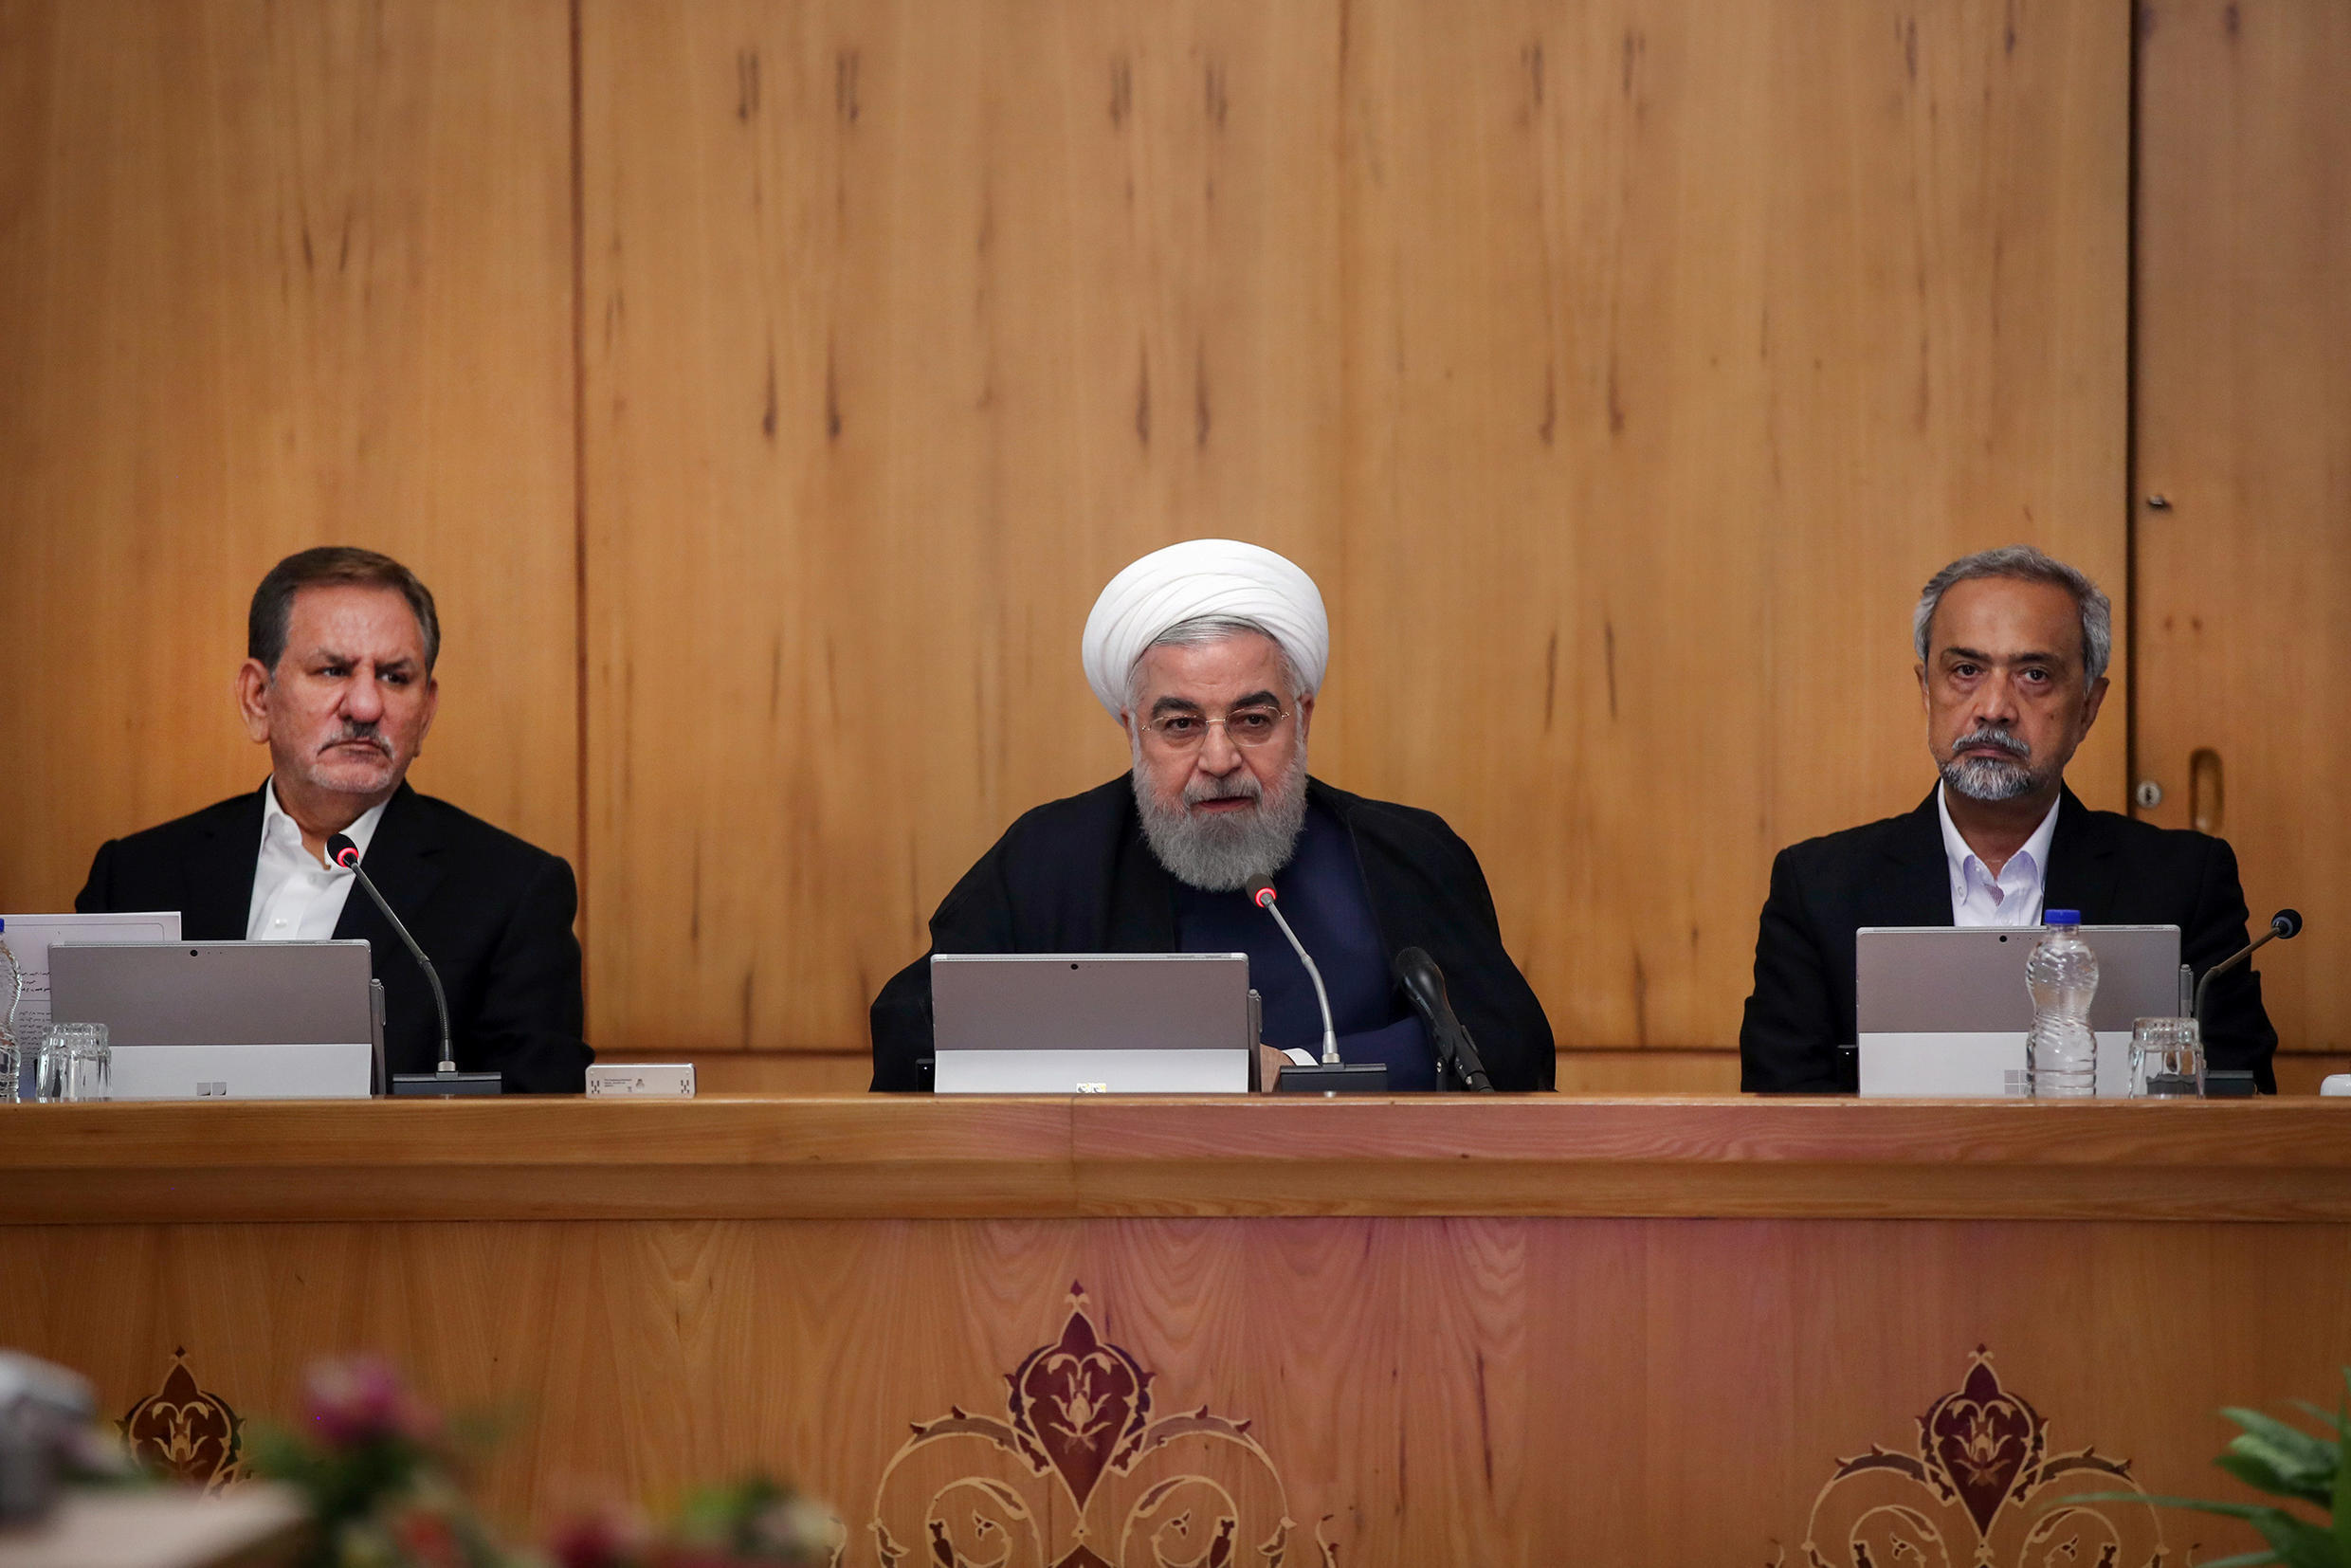 Iranian President Hassan Rouhani speaks during the cabinet meeting in Tehran, Iran, September 18, 2019.